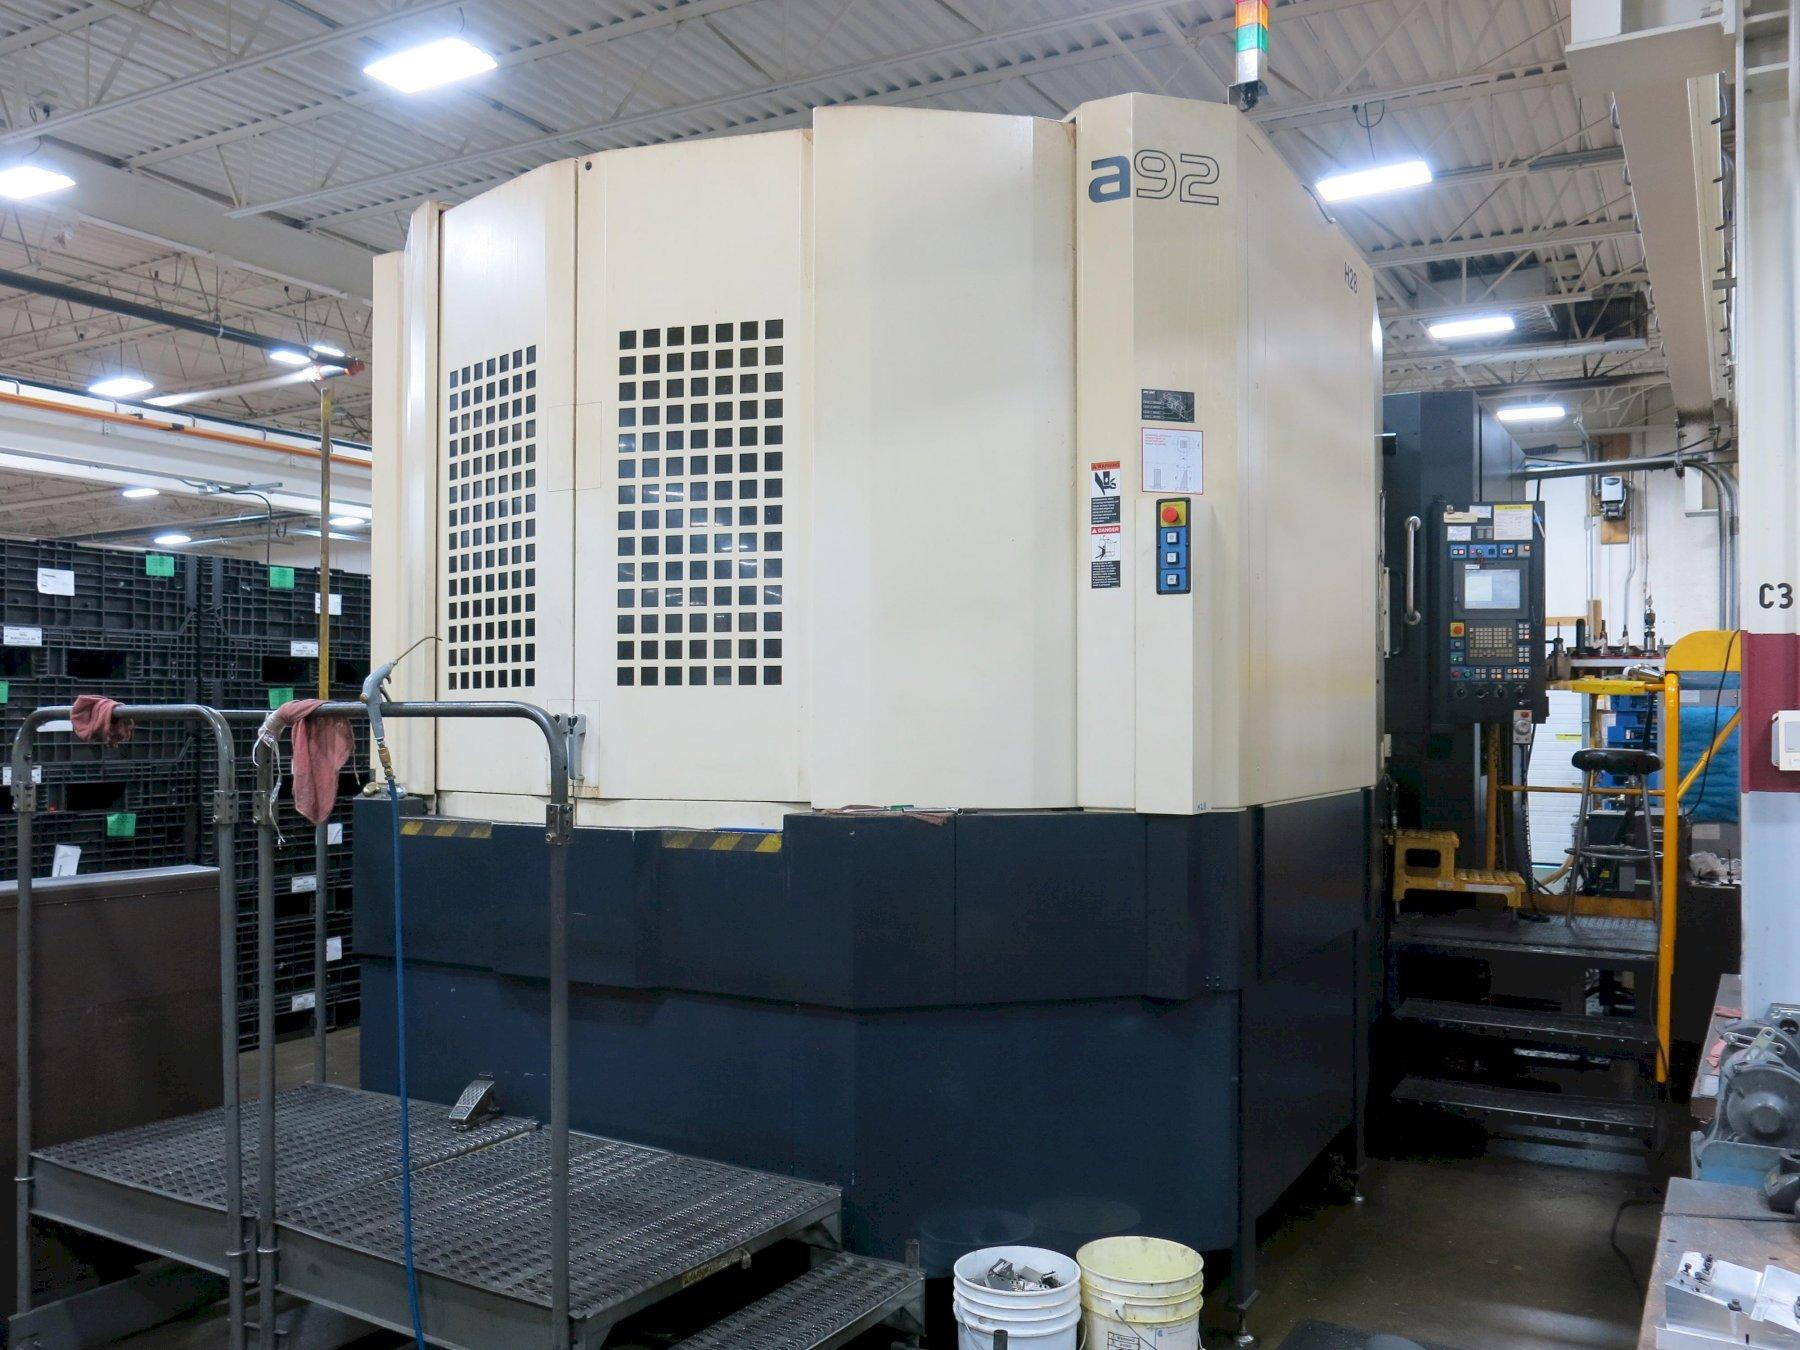 Makino Model A92 CNC Horizontal Machining Center, with 2-Pallets, Control:Pro 5, 8000RPM, 4th Axis, ATC-92, New 2008